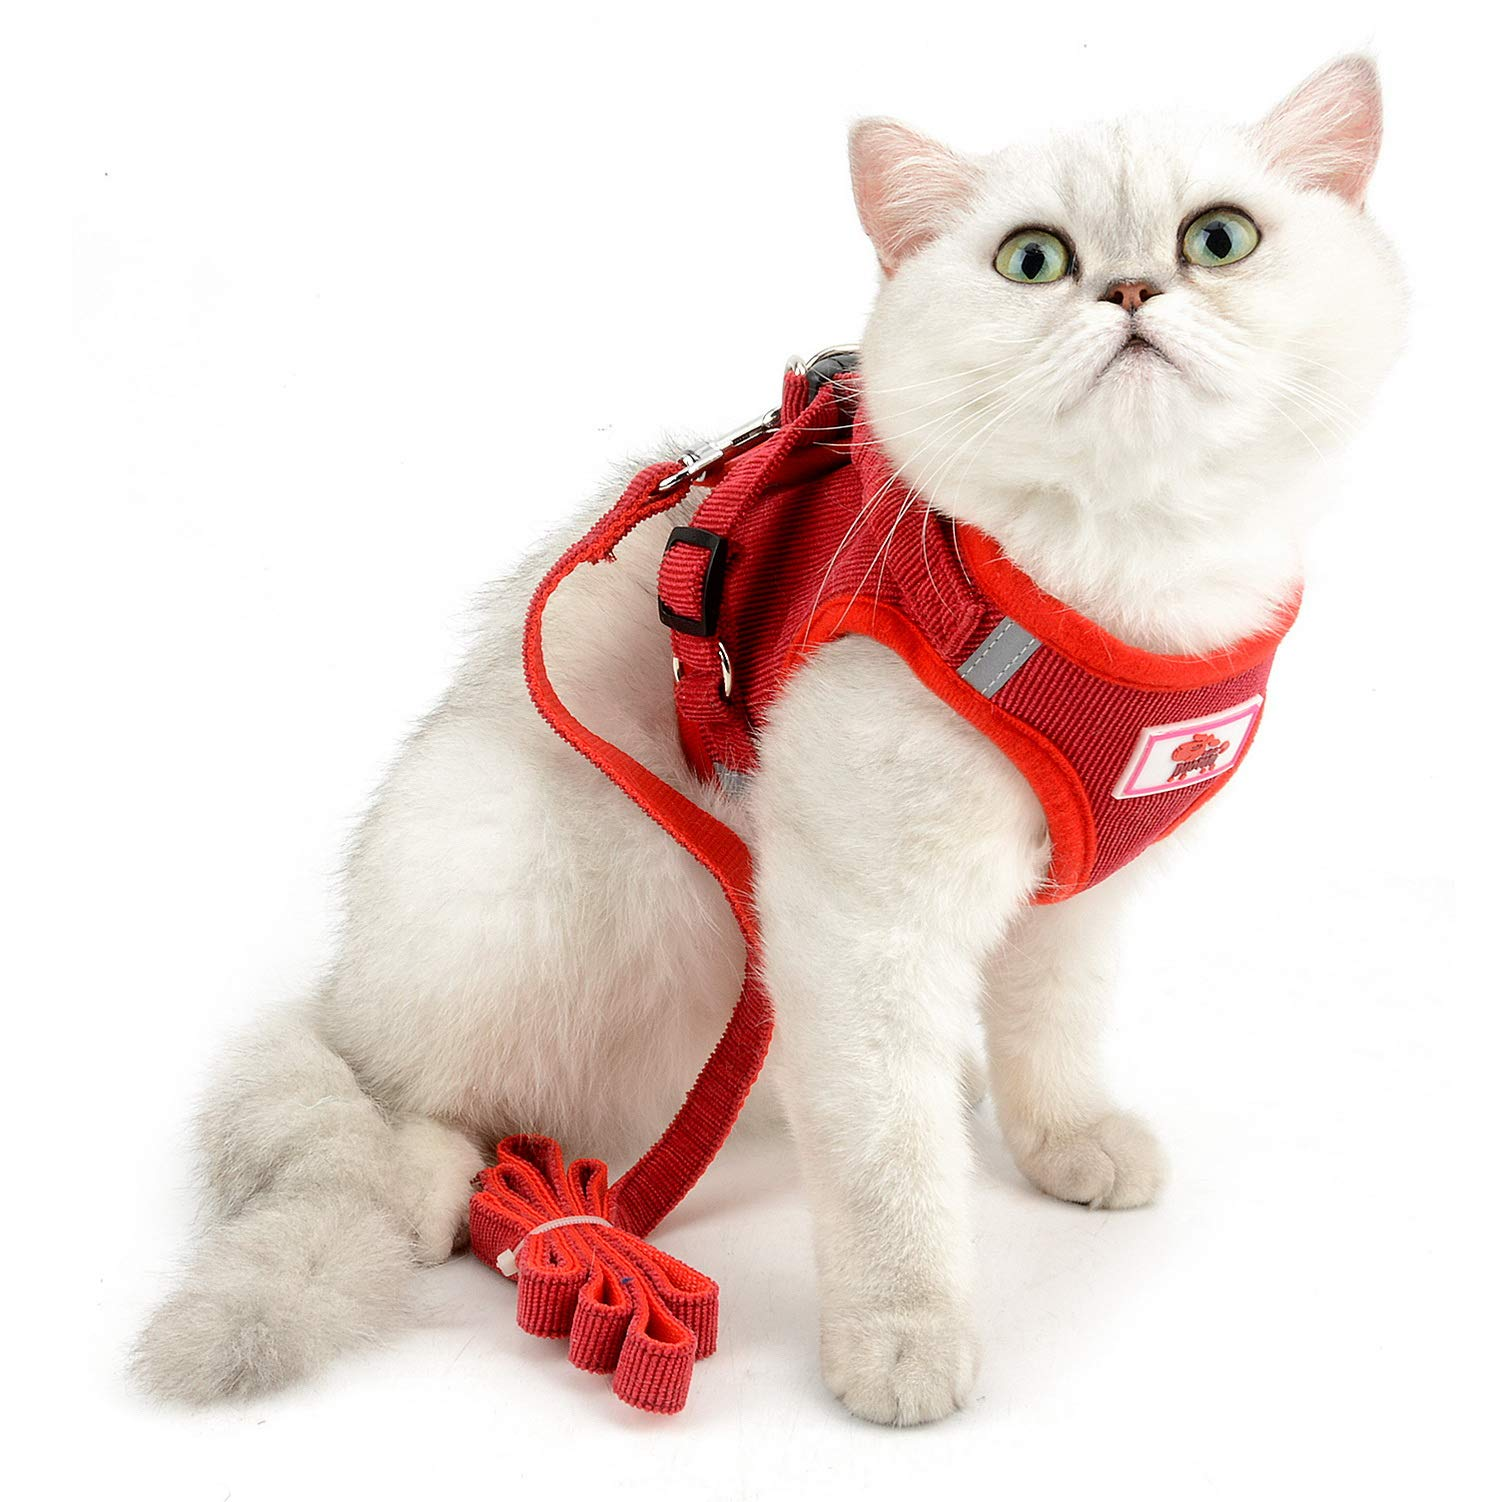 SELMAI Mesh Harness for Cats No Pull No Choke Escape Proof Padded Vest for Puppy Small Dogs Leash Lead for Kitten Walking Jacket Adjustable Training Collar Corduroy Soft Material